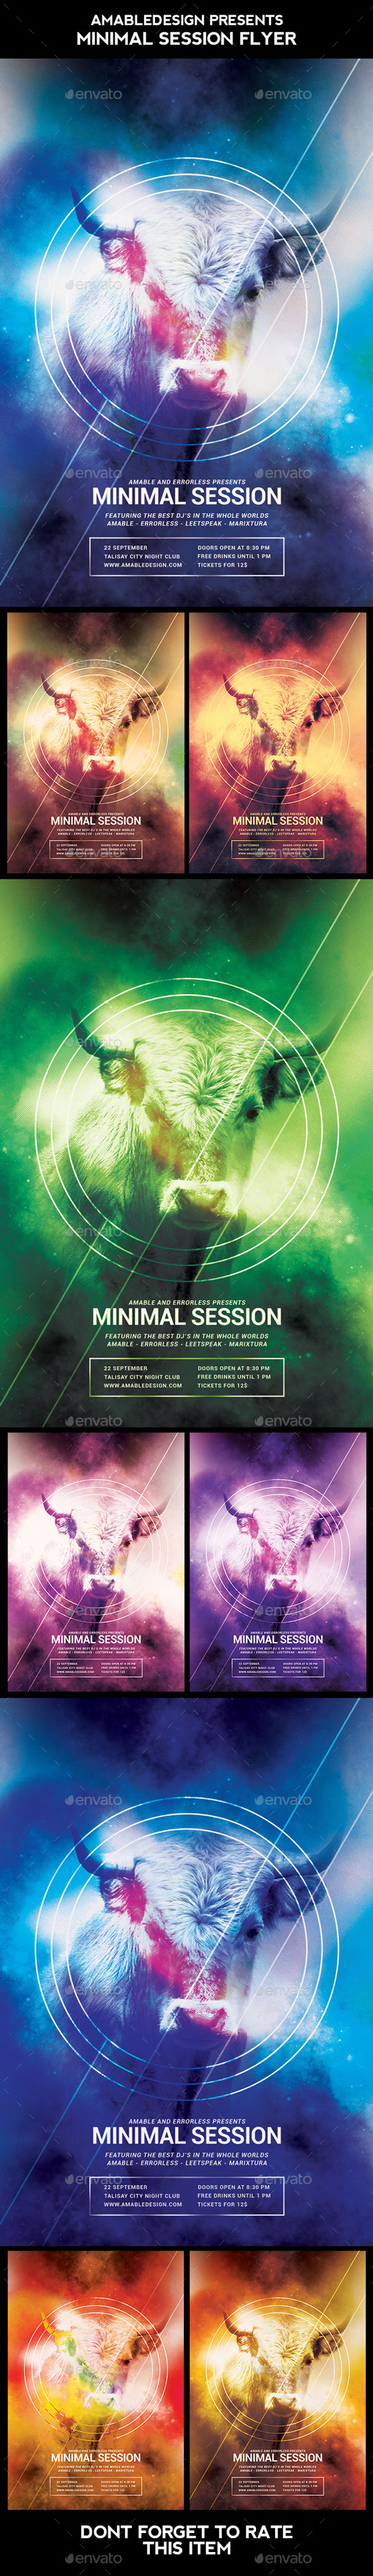 Minimal Session Flyer - Clubs & Parties Events